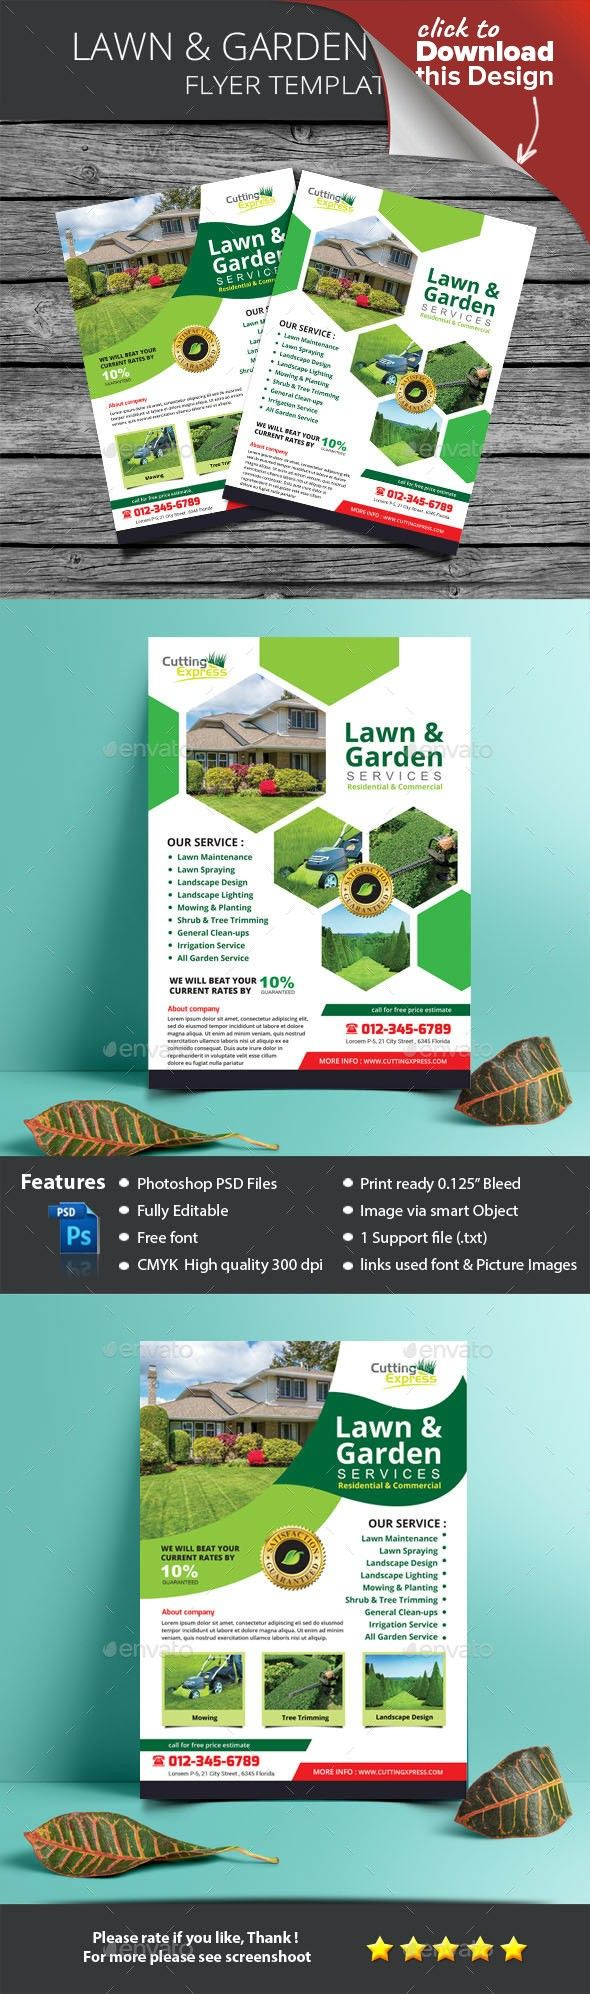 Lawn Garden Services Flyer Template Template And Fonts